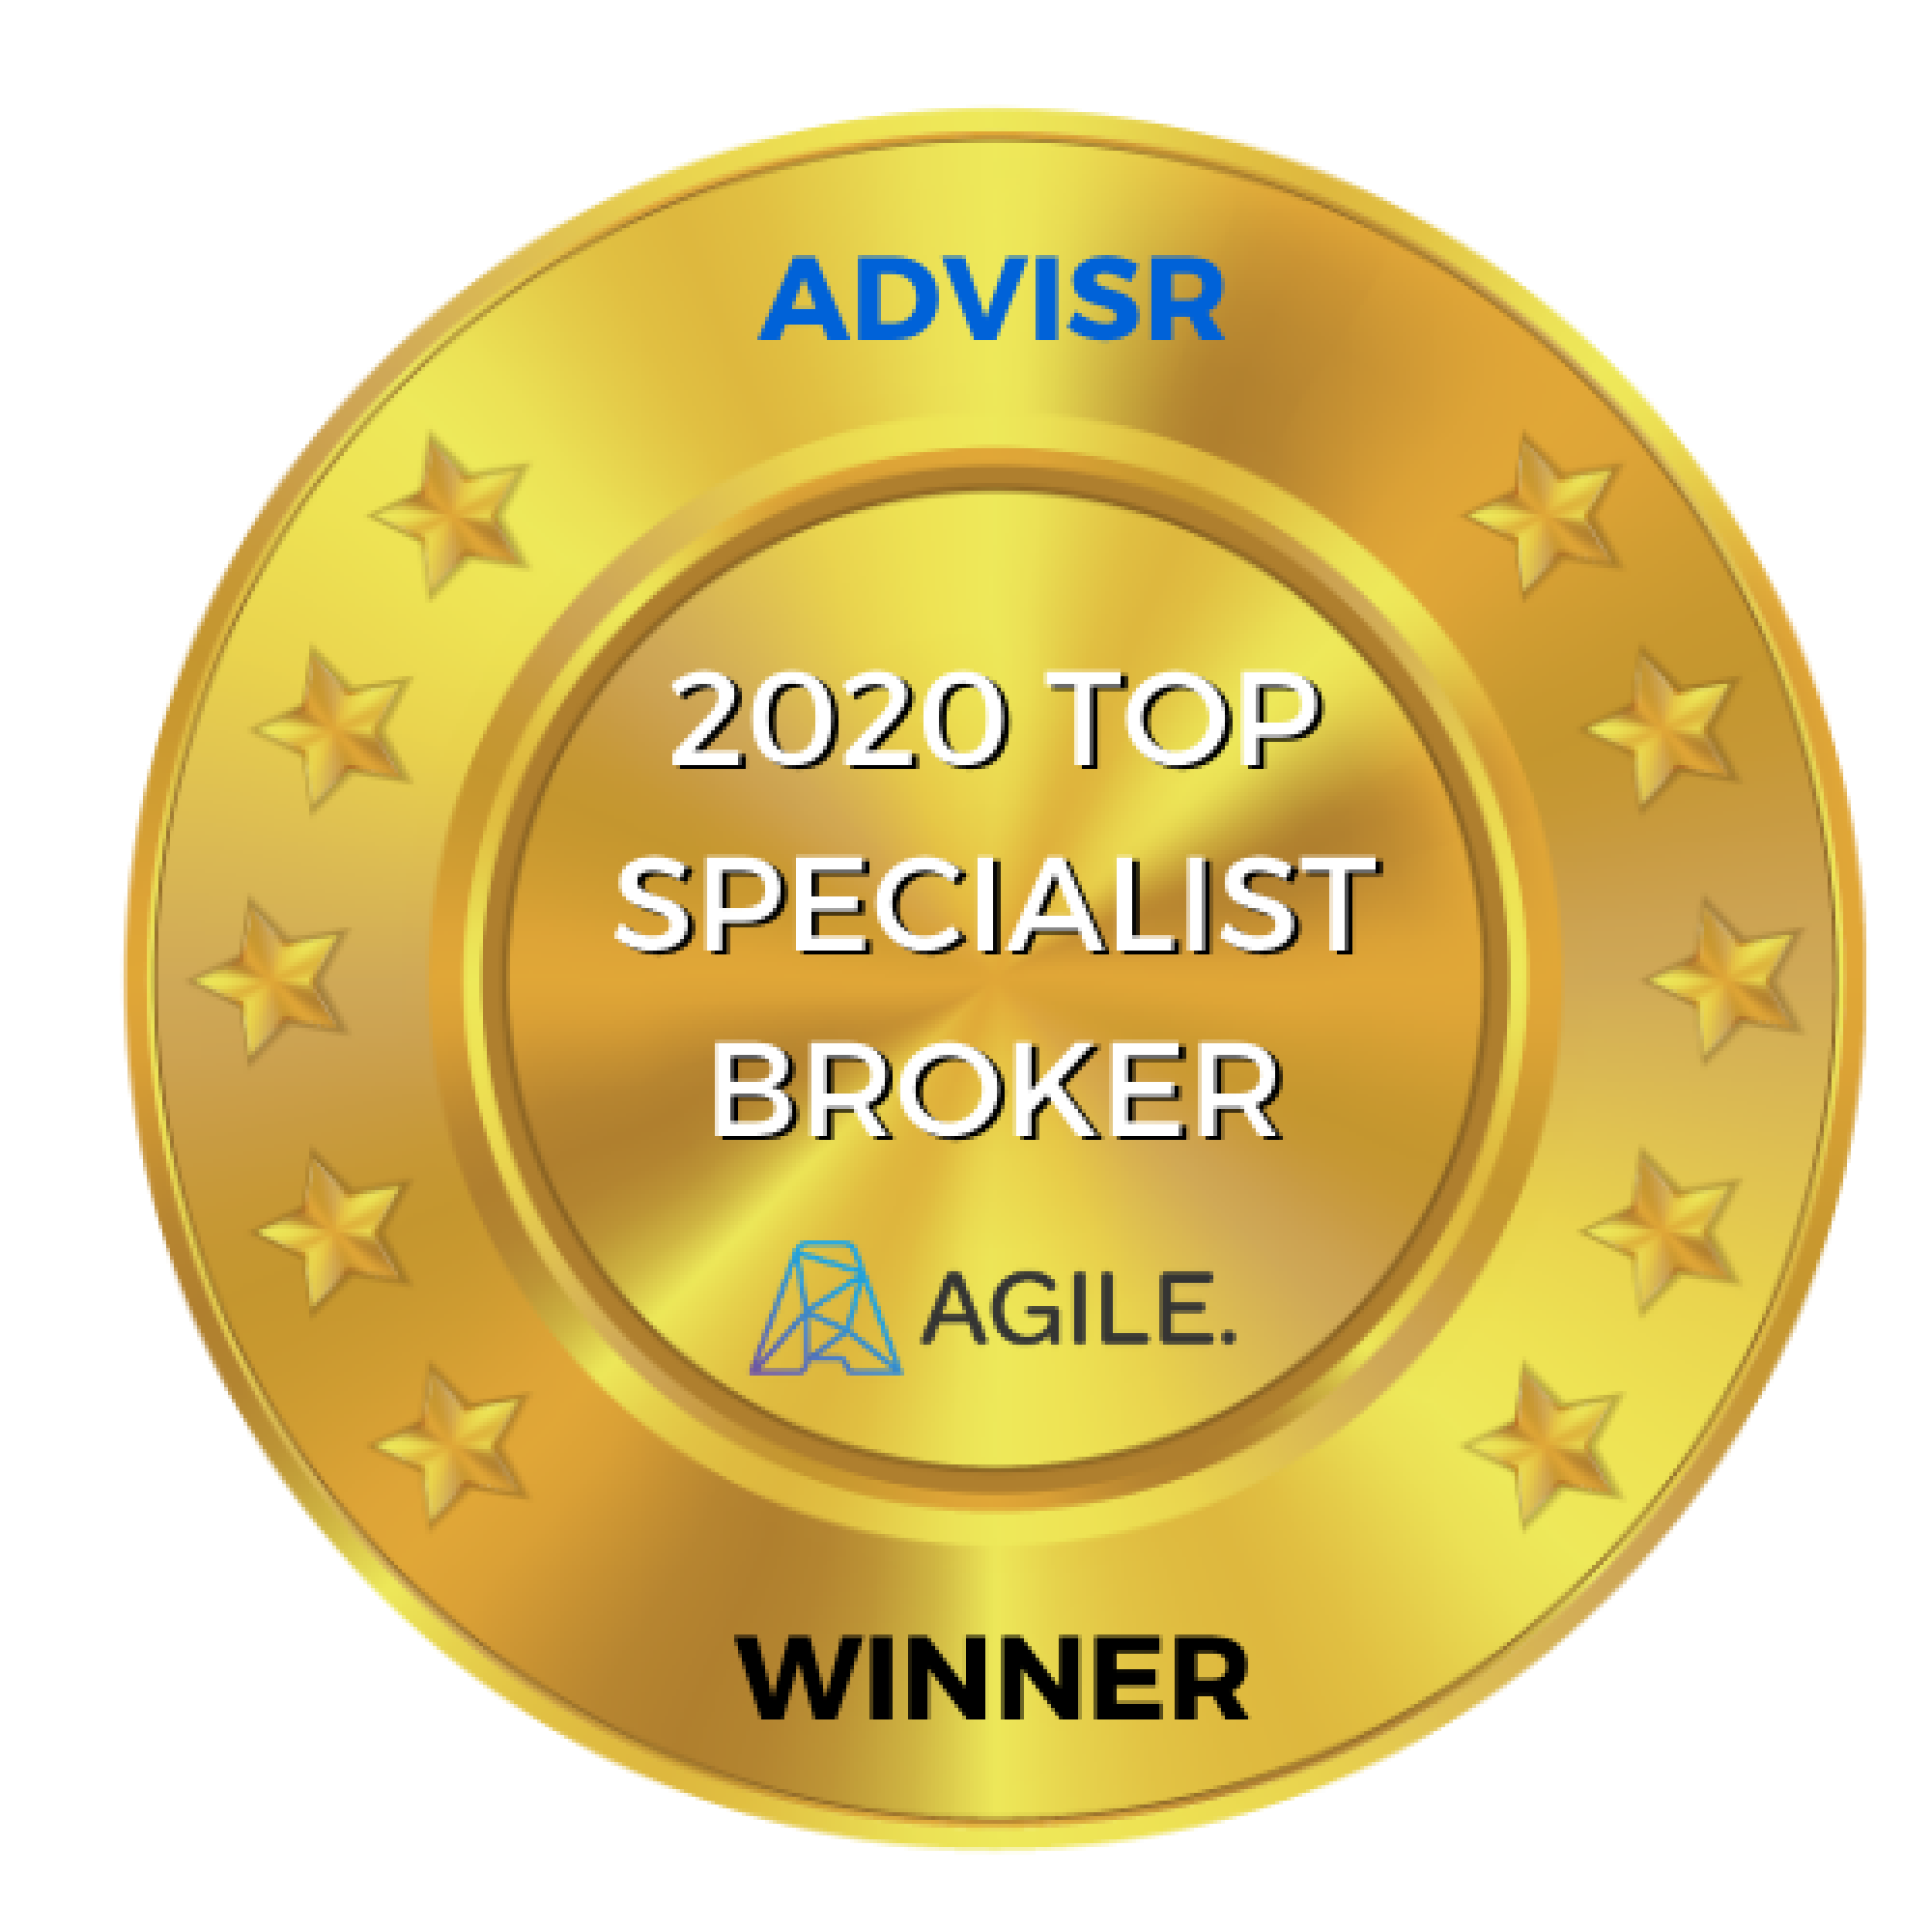 Advisr Insurance Broker Awards 2020 Winner | Top Specialist Broker